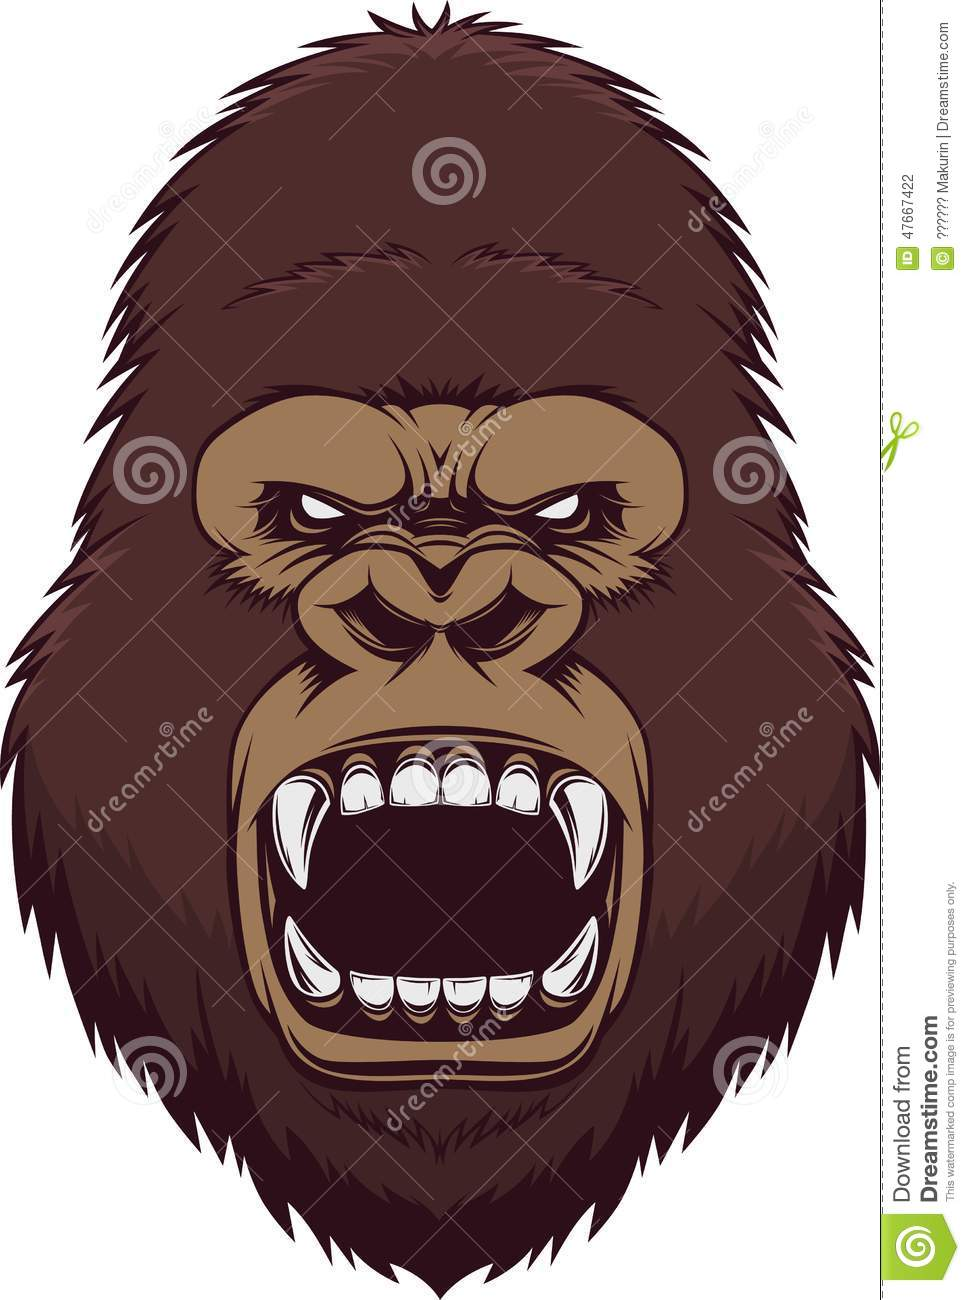 Angry Gorilla Head Stock Vector - Image: 47667422